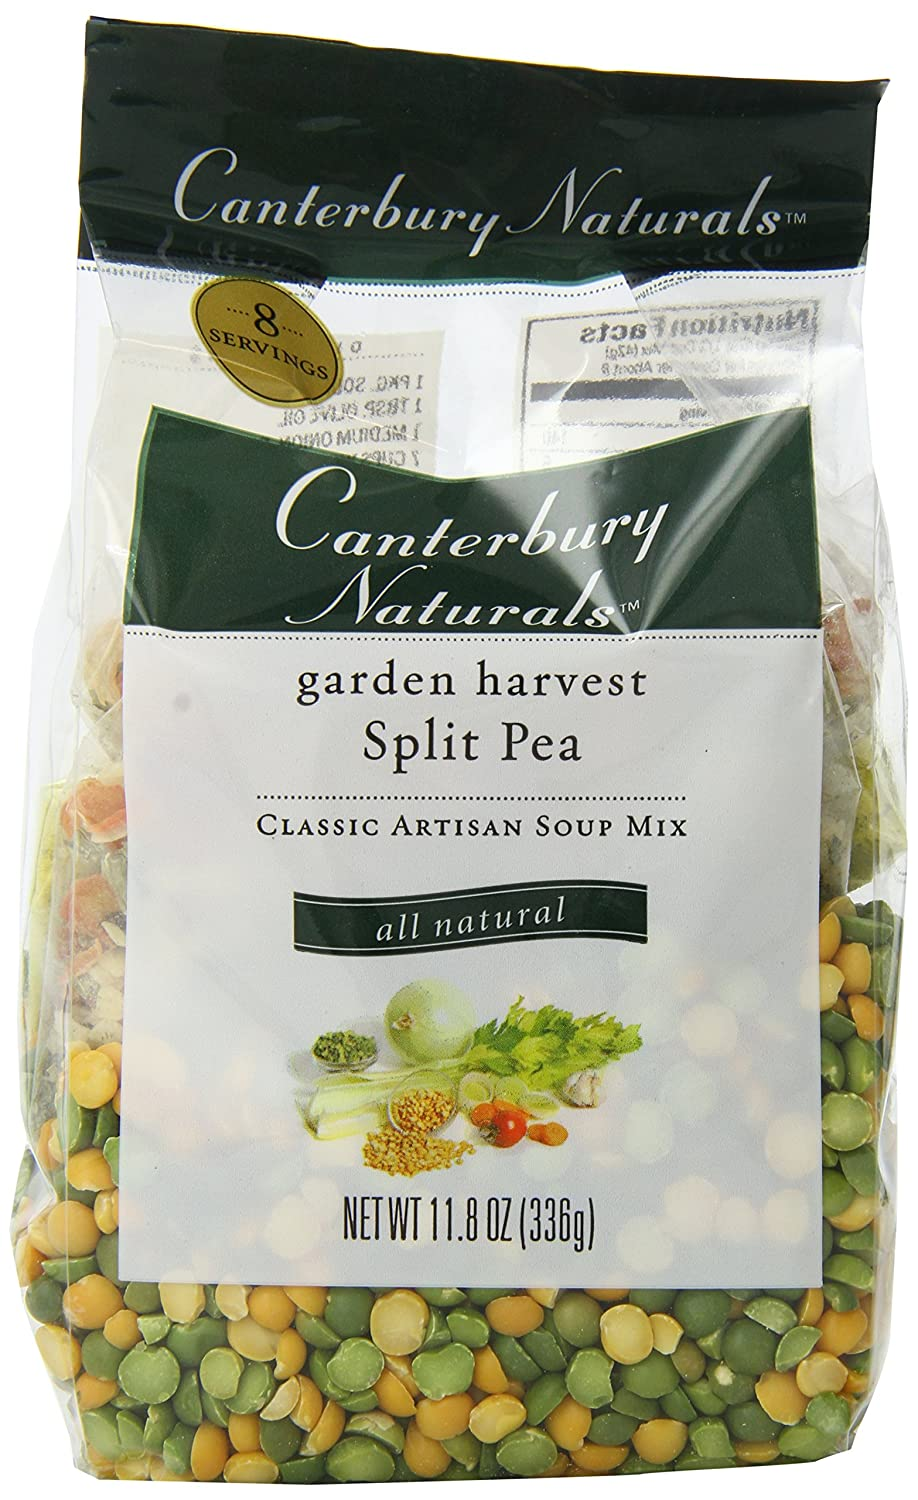 amazoncom canterbury naturals garden harvest split pea classic artisan soup mix organic 118 ounce bags pack of 6 grocery gourmet food - Garden Harvest Supply